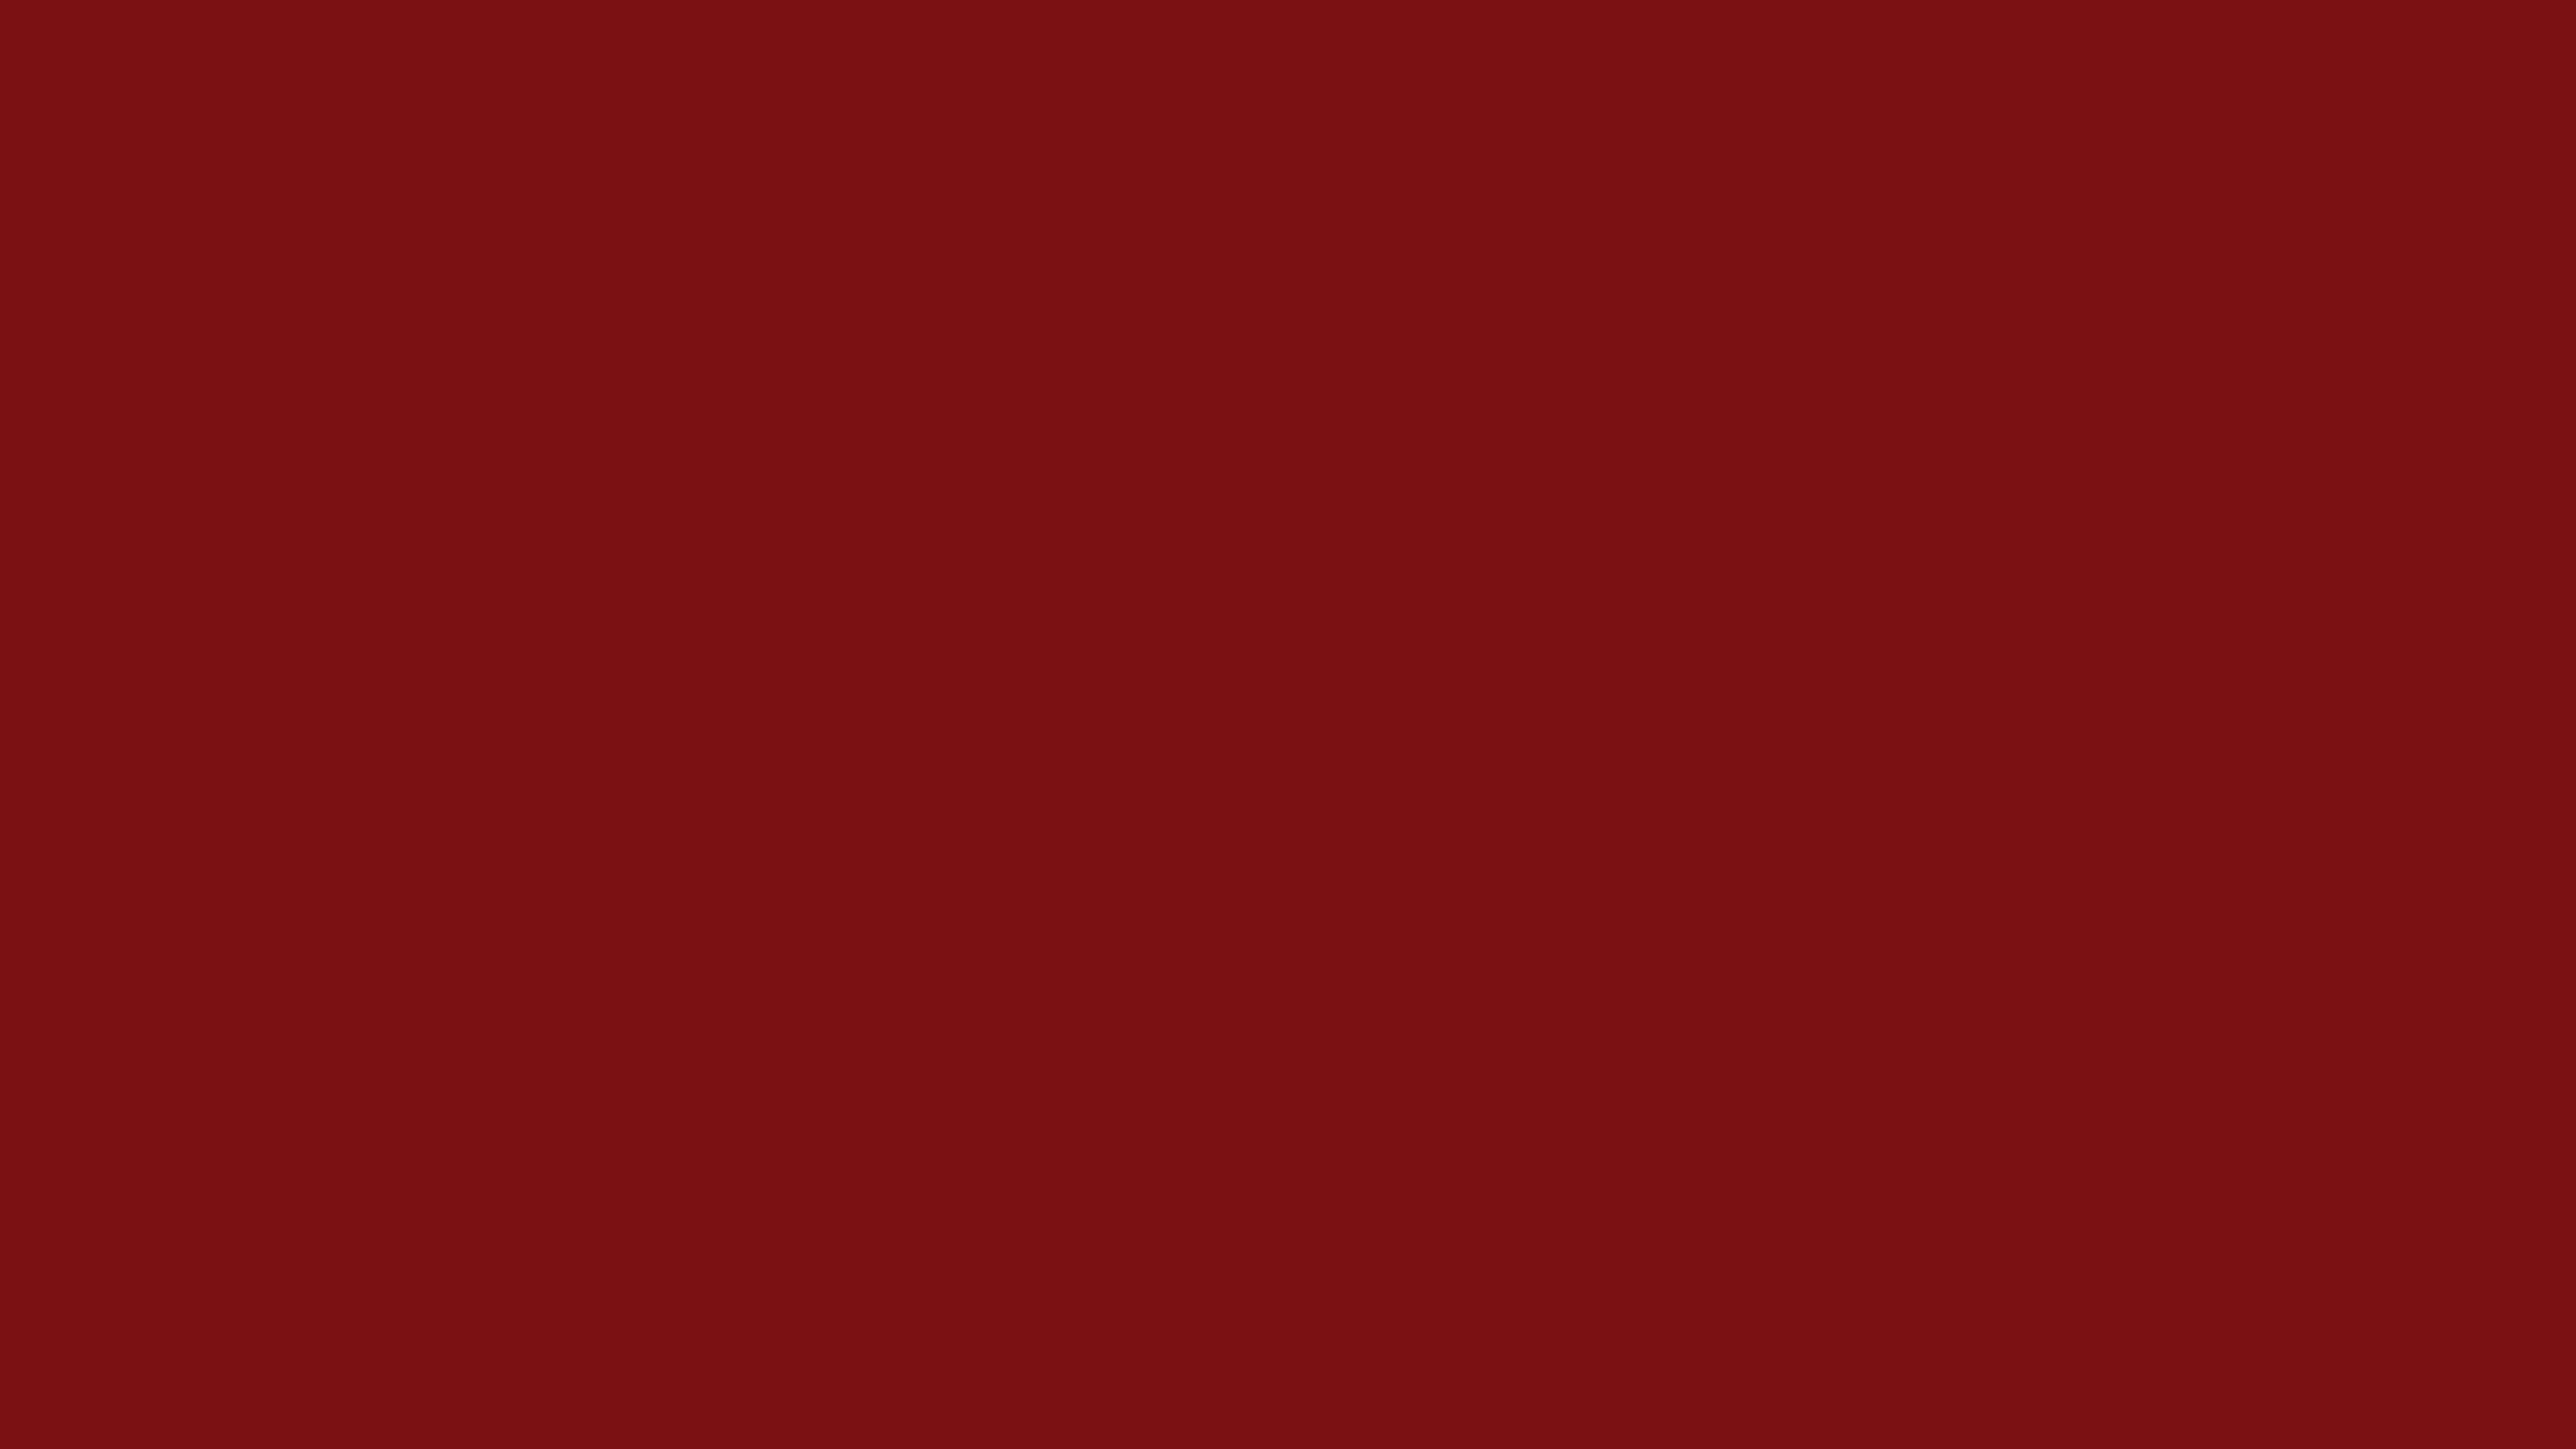 4096x2304 UP Maroon Solid Color Background